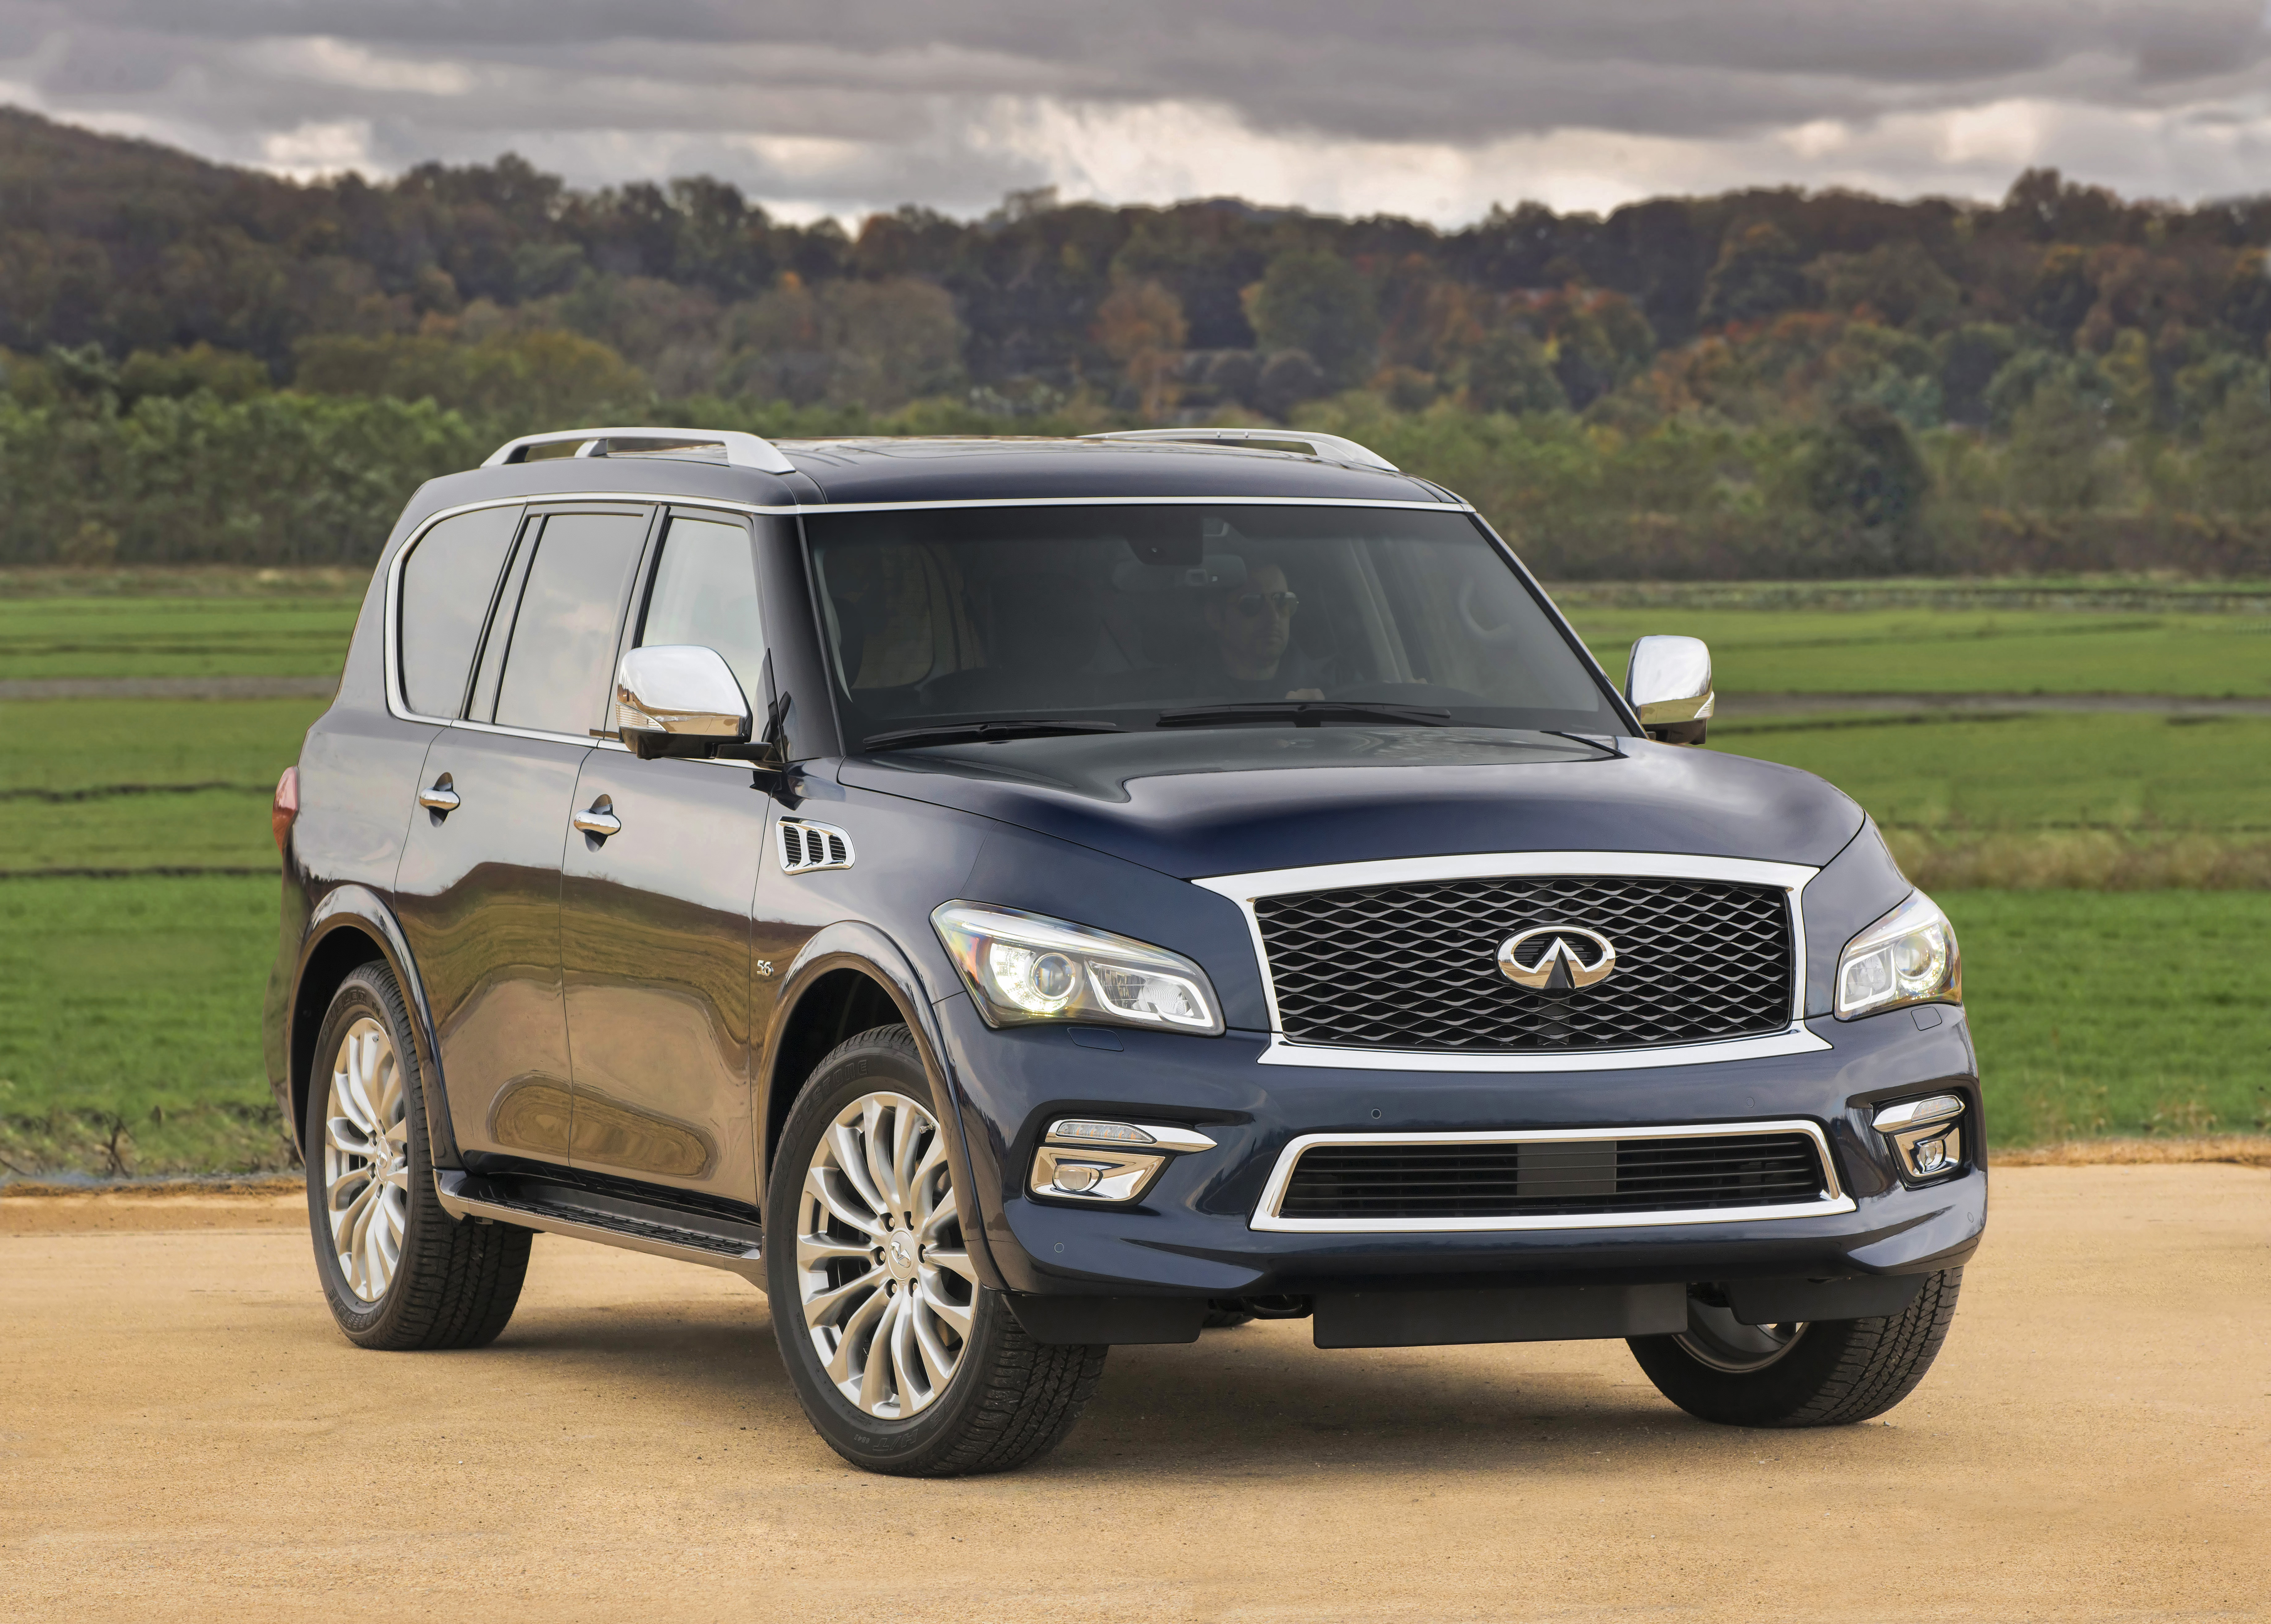 obsidian luxe research composite large awd sedan groovecar black lease infinity infiniti